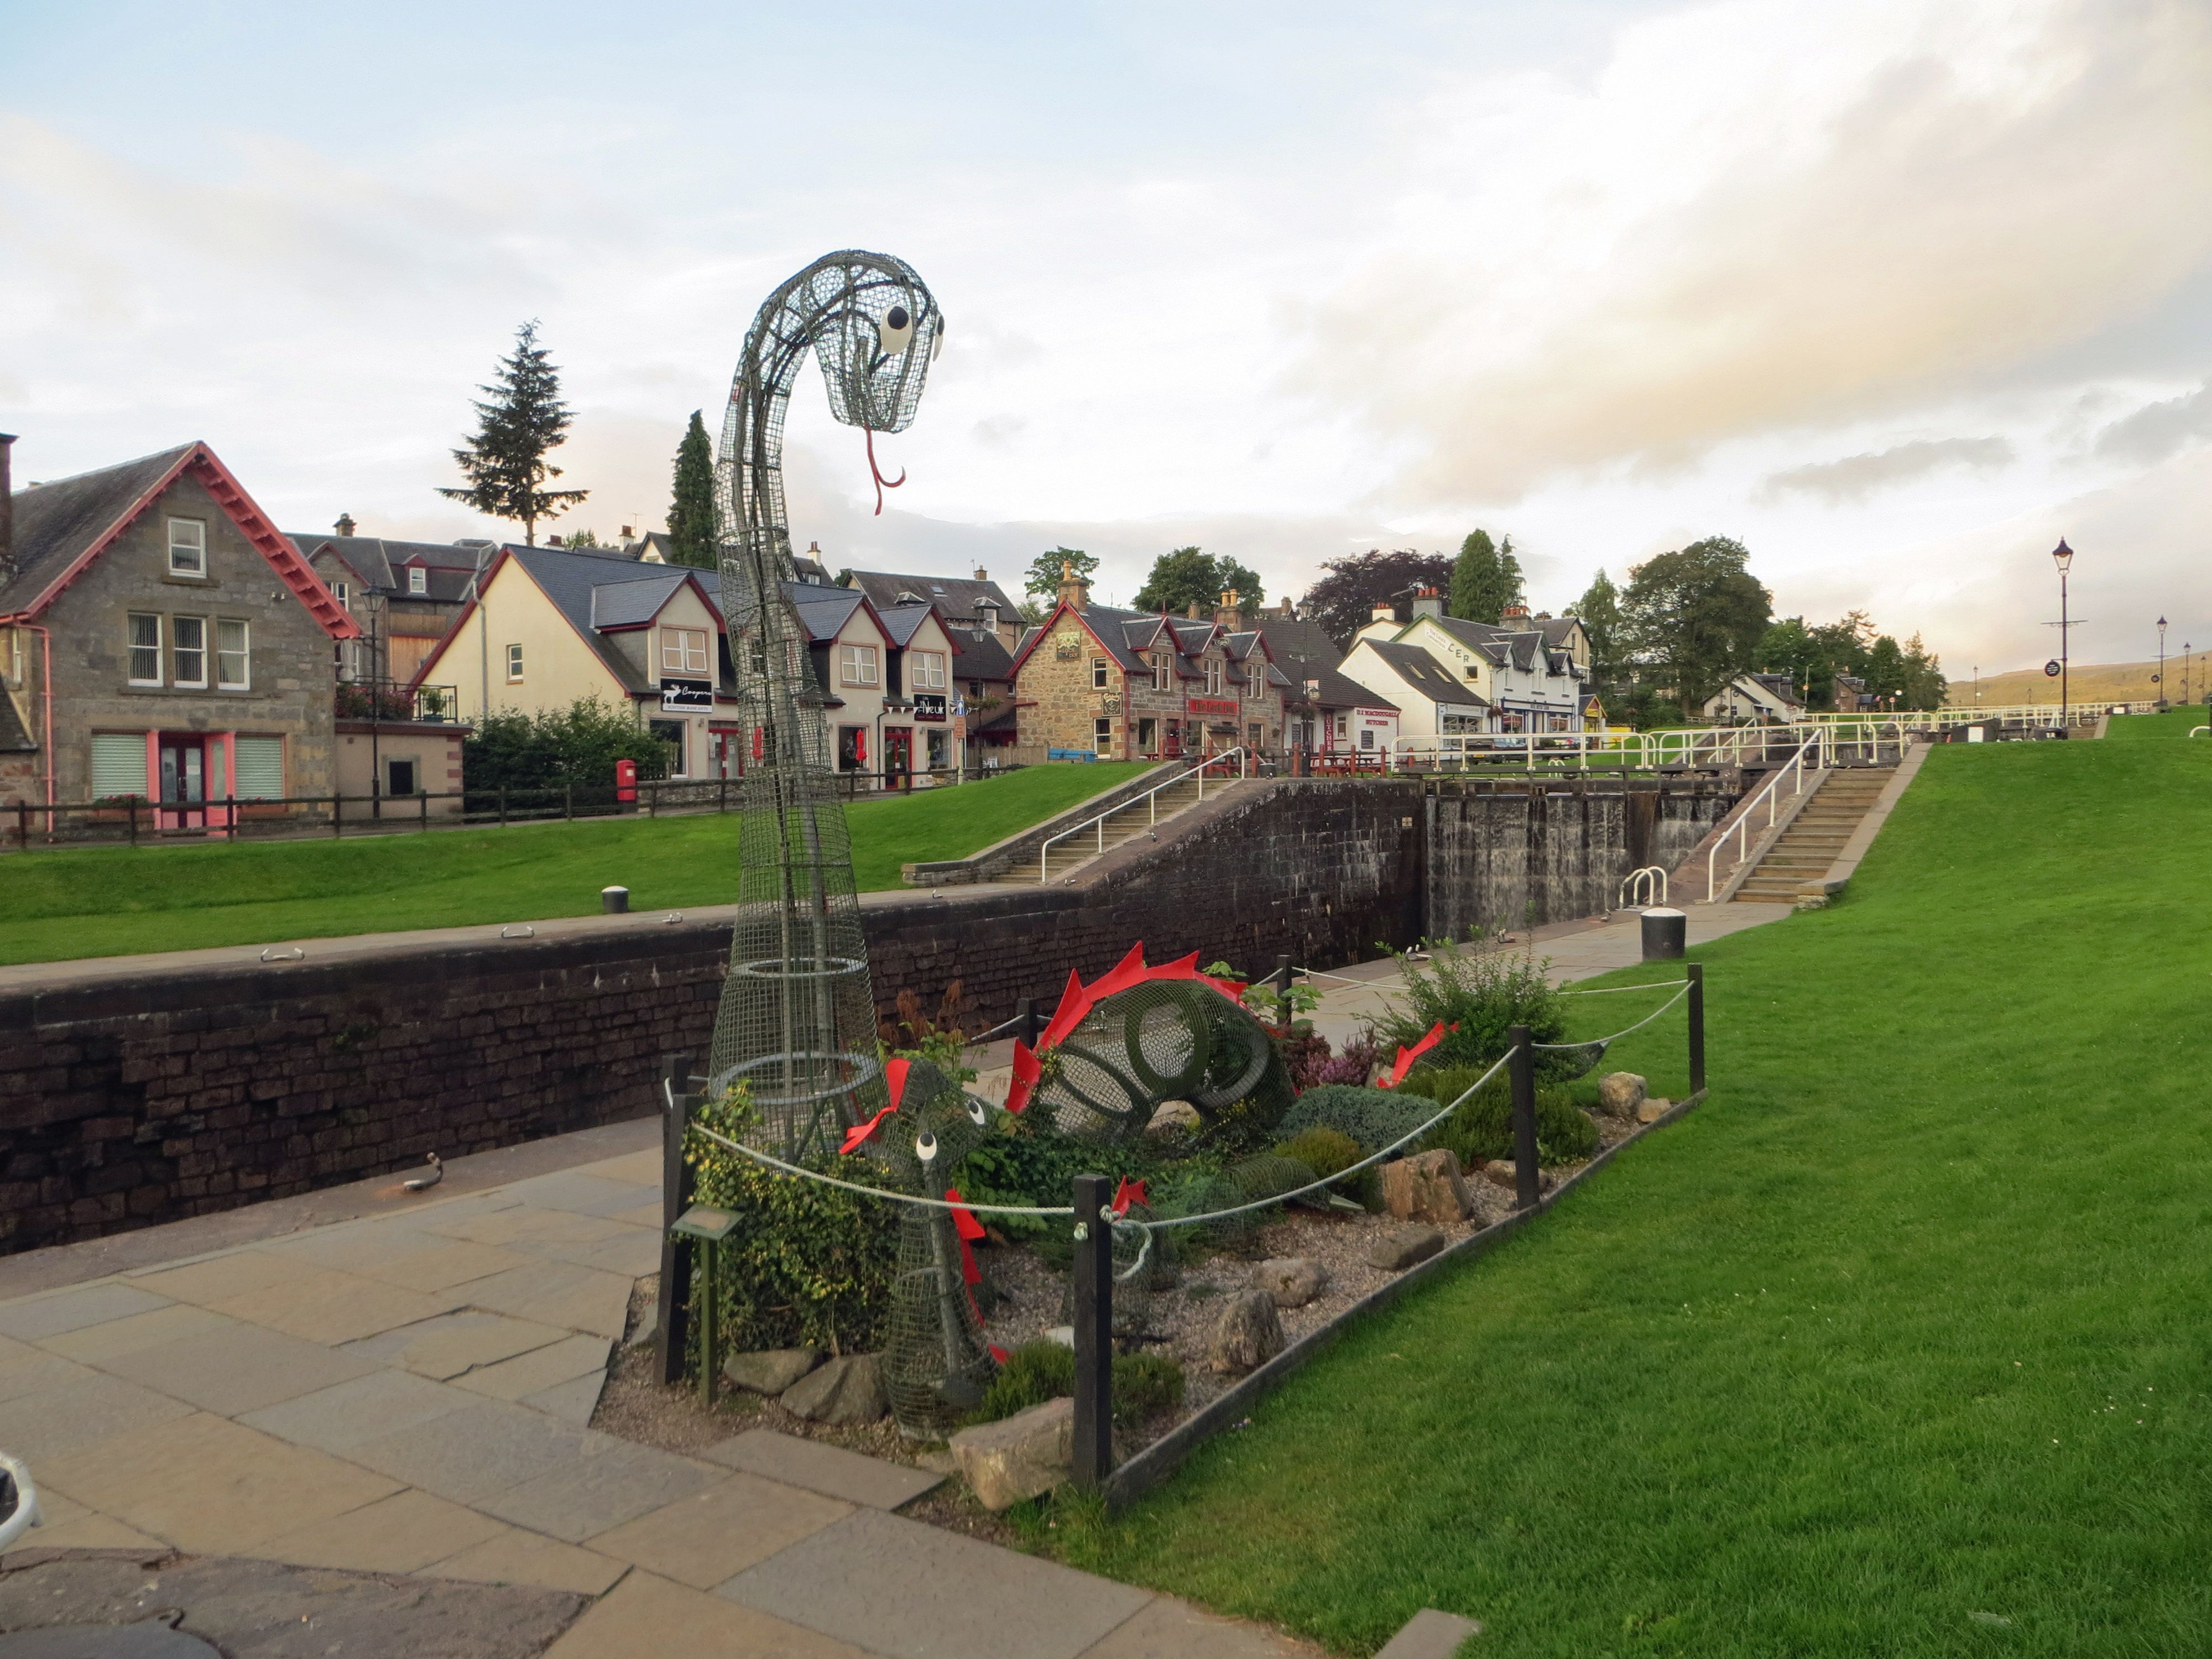 Beautiful town of Fort Augustus, Scotland